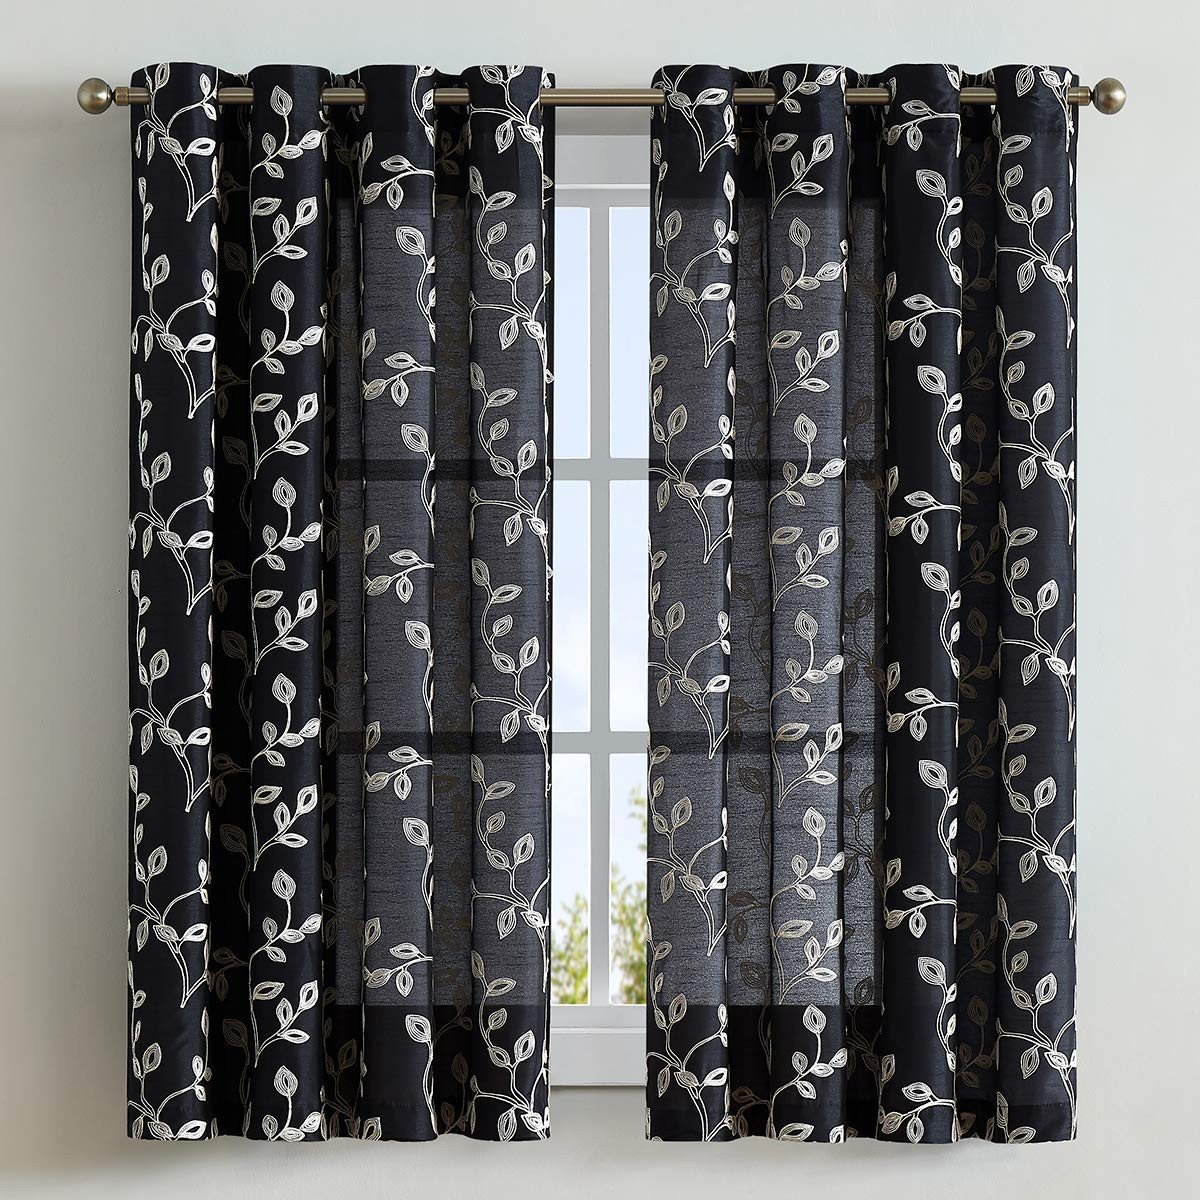 Curtains for Bedroom Windows with Designs Awesome Lala & Wonz Faux Silk Semi Sheer Curtains for Bedroom Floral Embroidered Grommet Sheer Window Curtains for Living Room 52 X 63 Inch Long Black 2